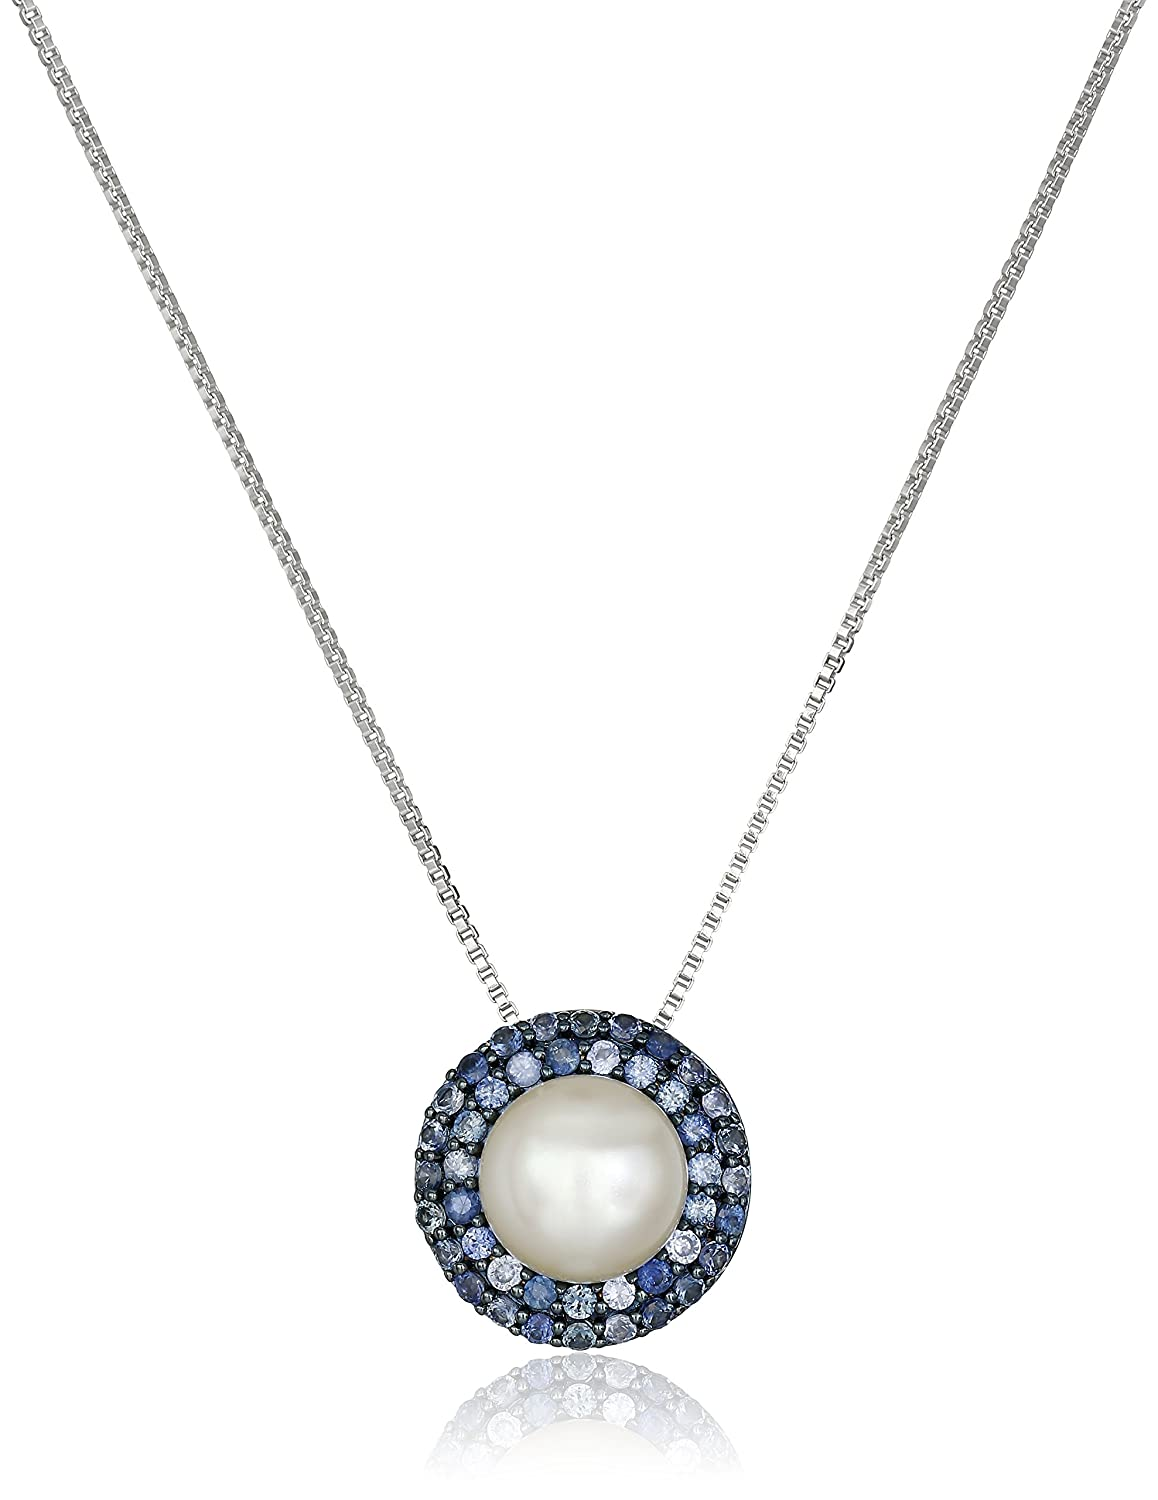 Sterling Silver Freshwater Cultured Pearl with Sapphire Halo Pendant Necklace, 18